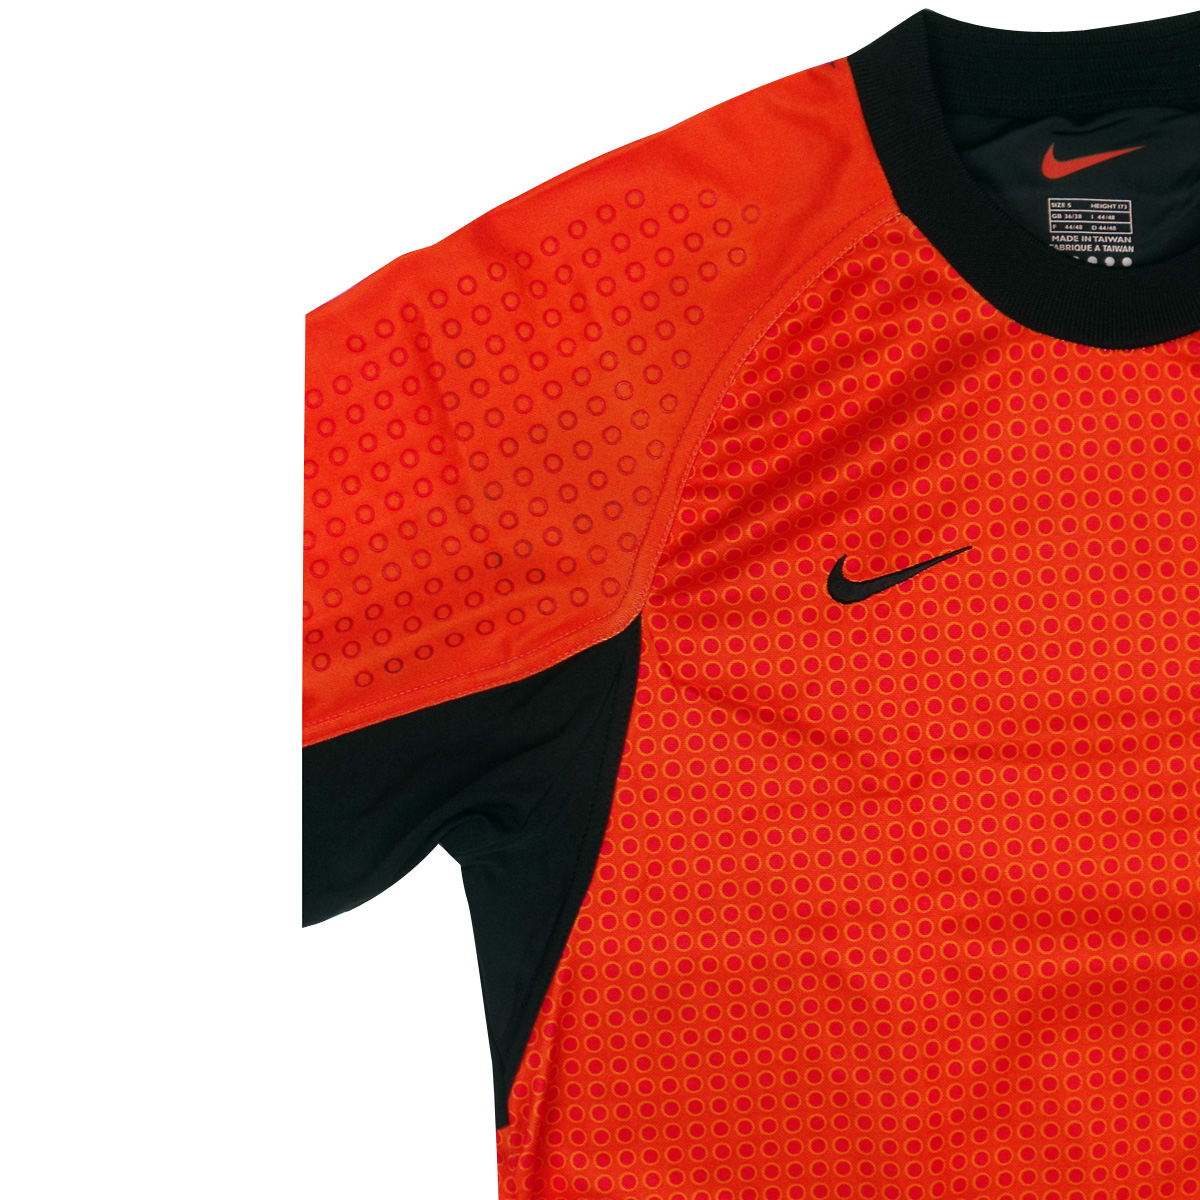 Mens nike mercurial dry dri fit running shirt top t shirt for Best athletic dress shirts